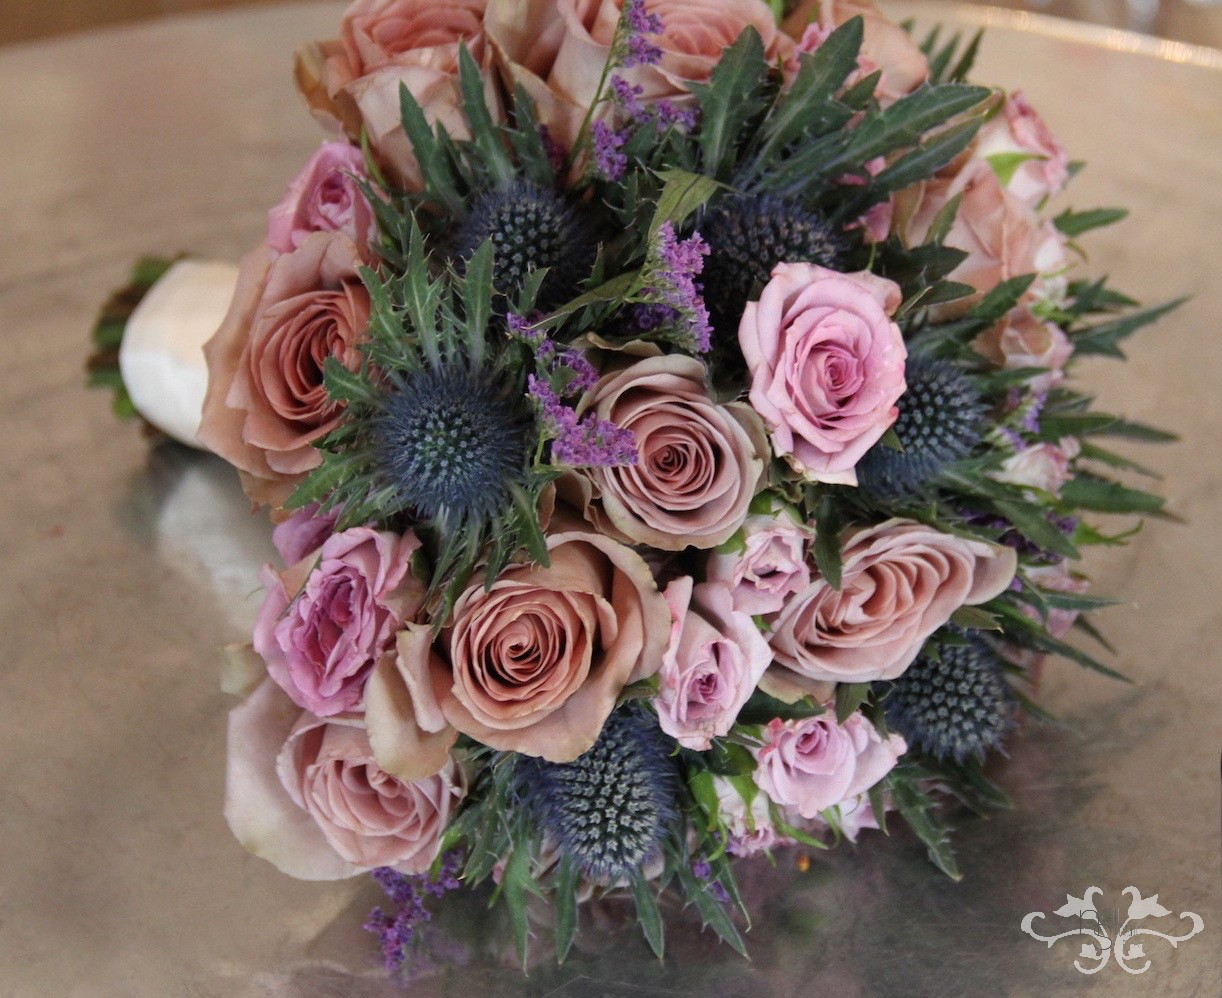 Traditional bridal bouquet by Neill Strain